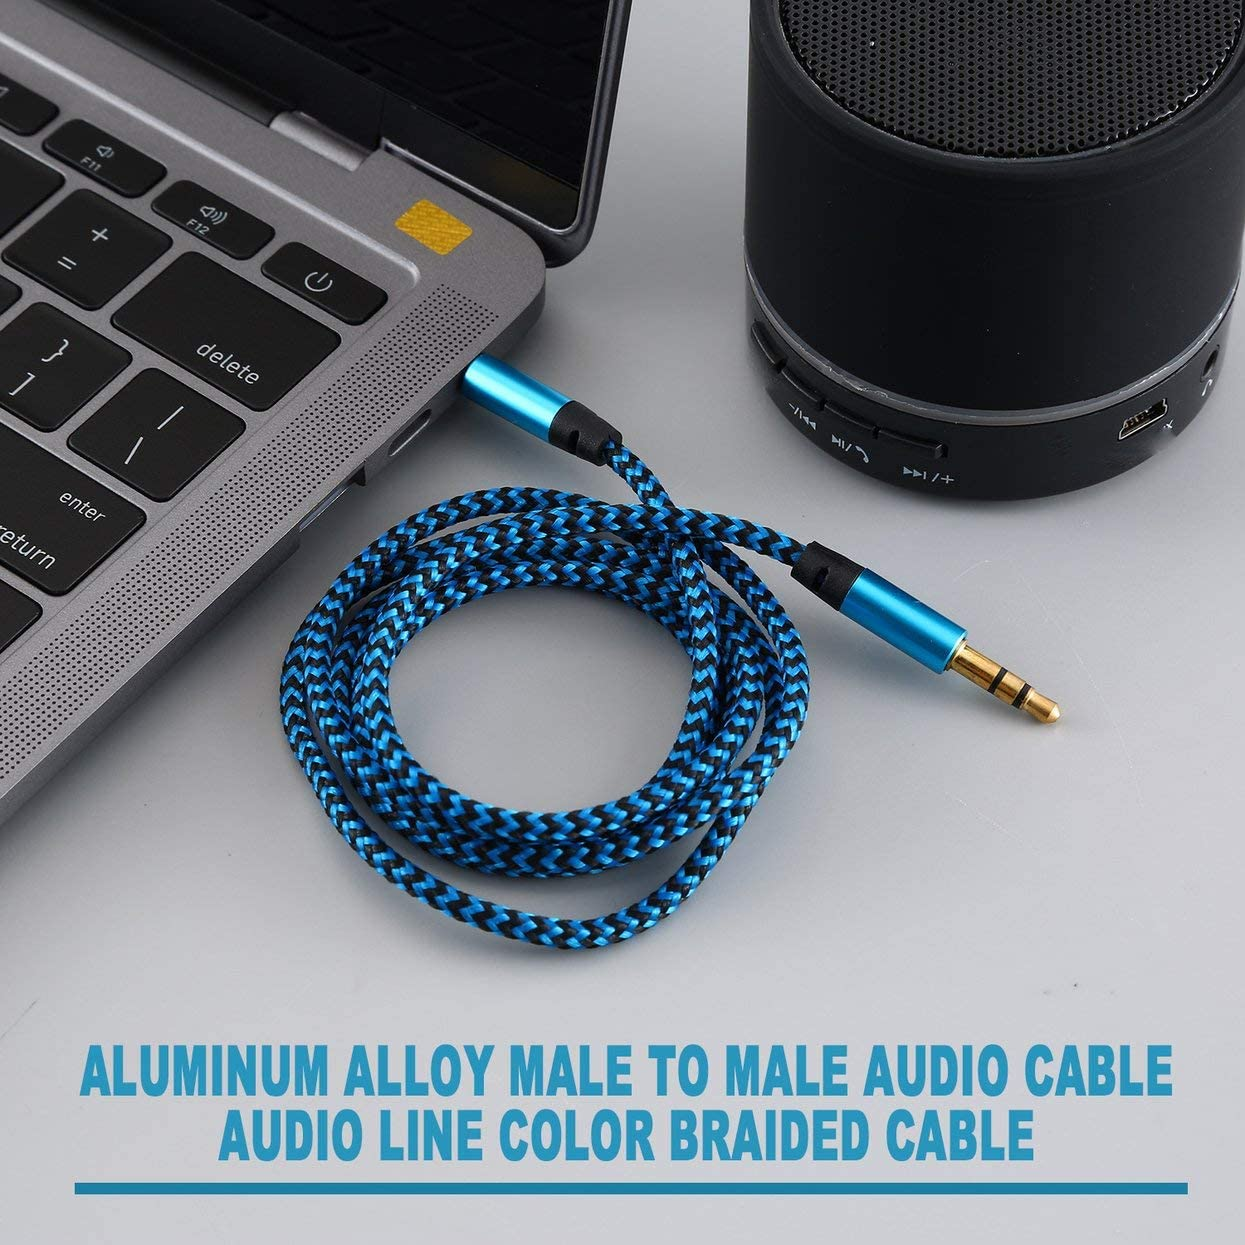 Detectorcatty Aluminum Alloy Male to Male Audio Cable 3.5Mm Audio Cable Aux Color Braided Recording Line Car Universal Cable